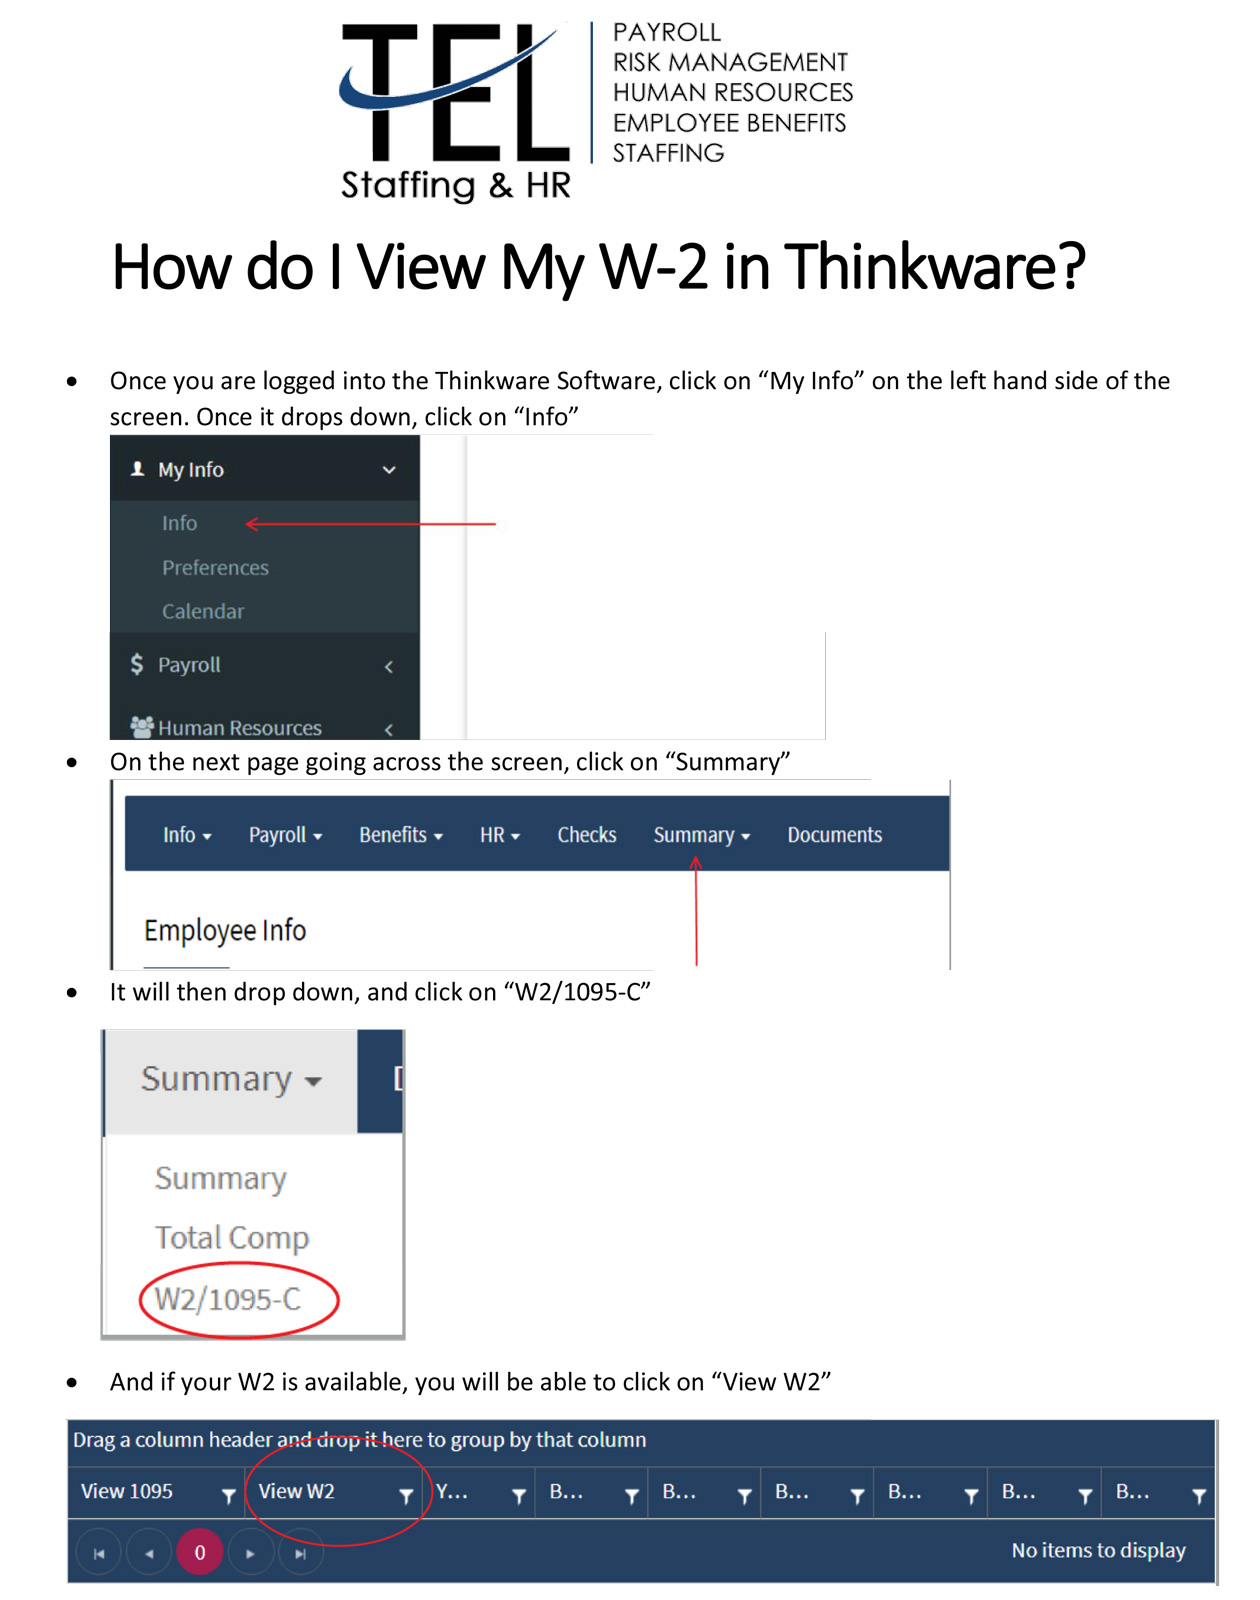 TEL-Staffing-and-HR-Professional-PEO-and-ASO-Solutions-How-do-I-View-My-W2-in-Thinkware